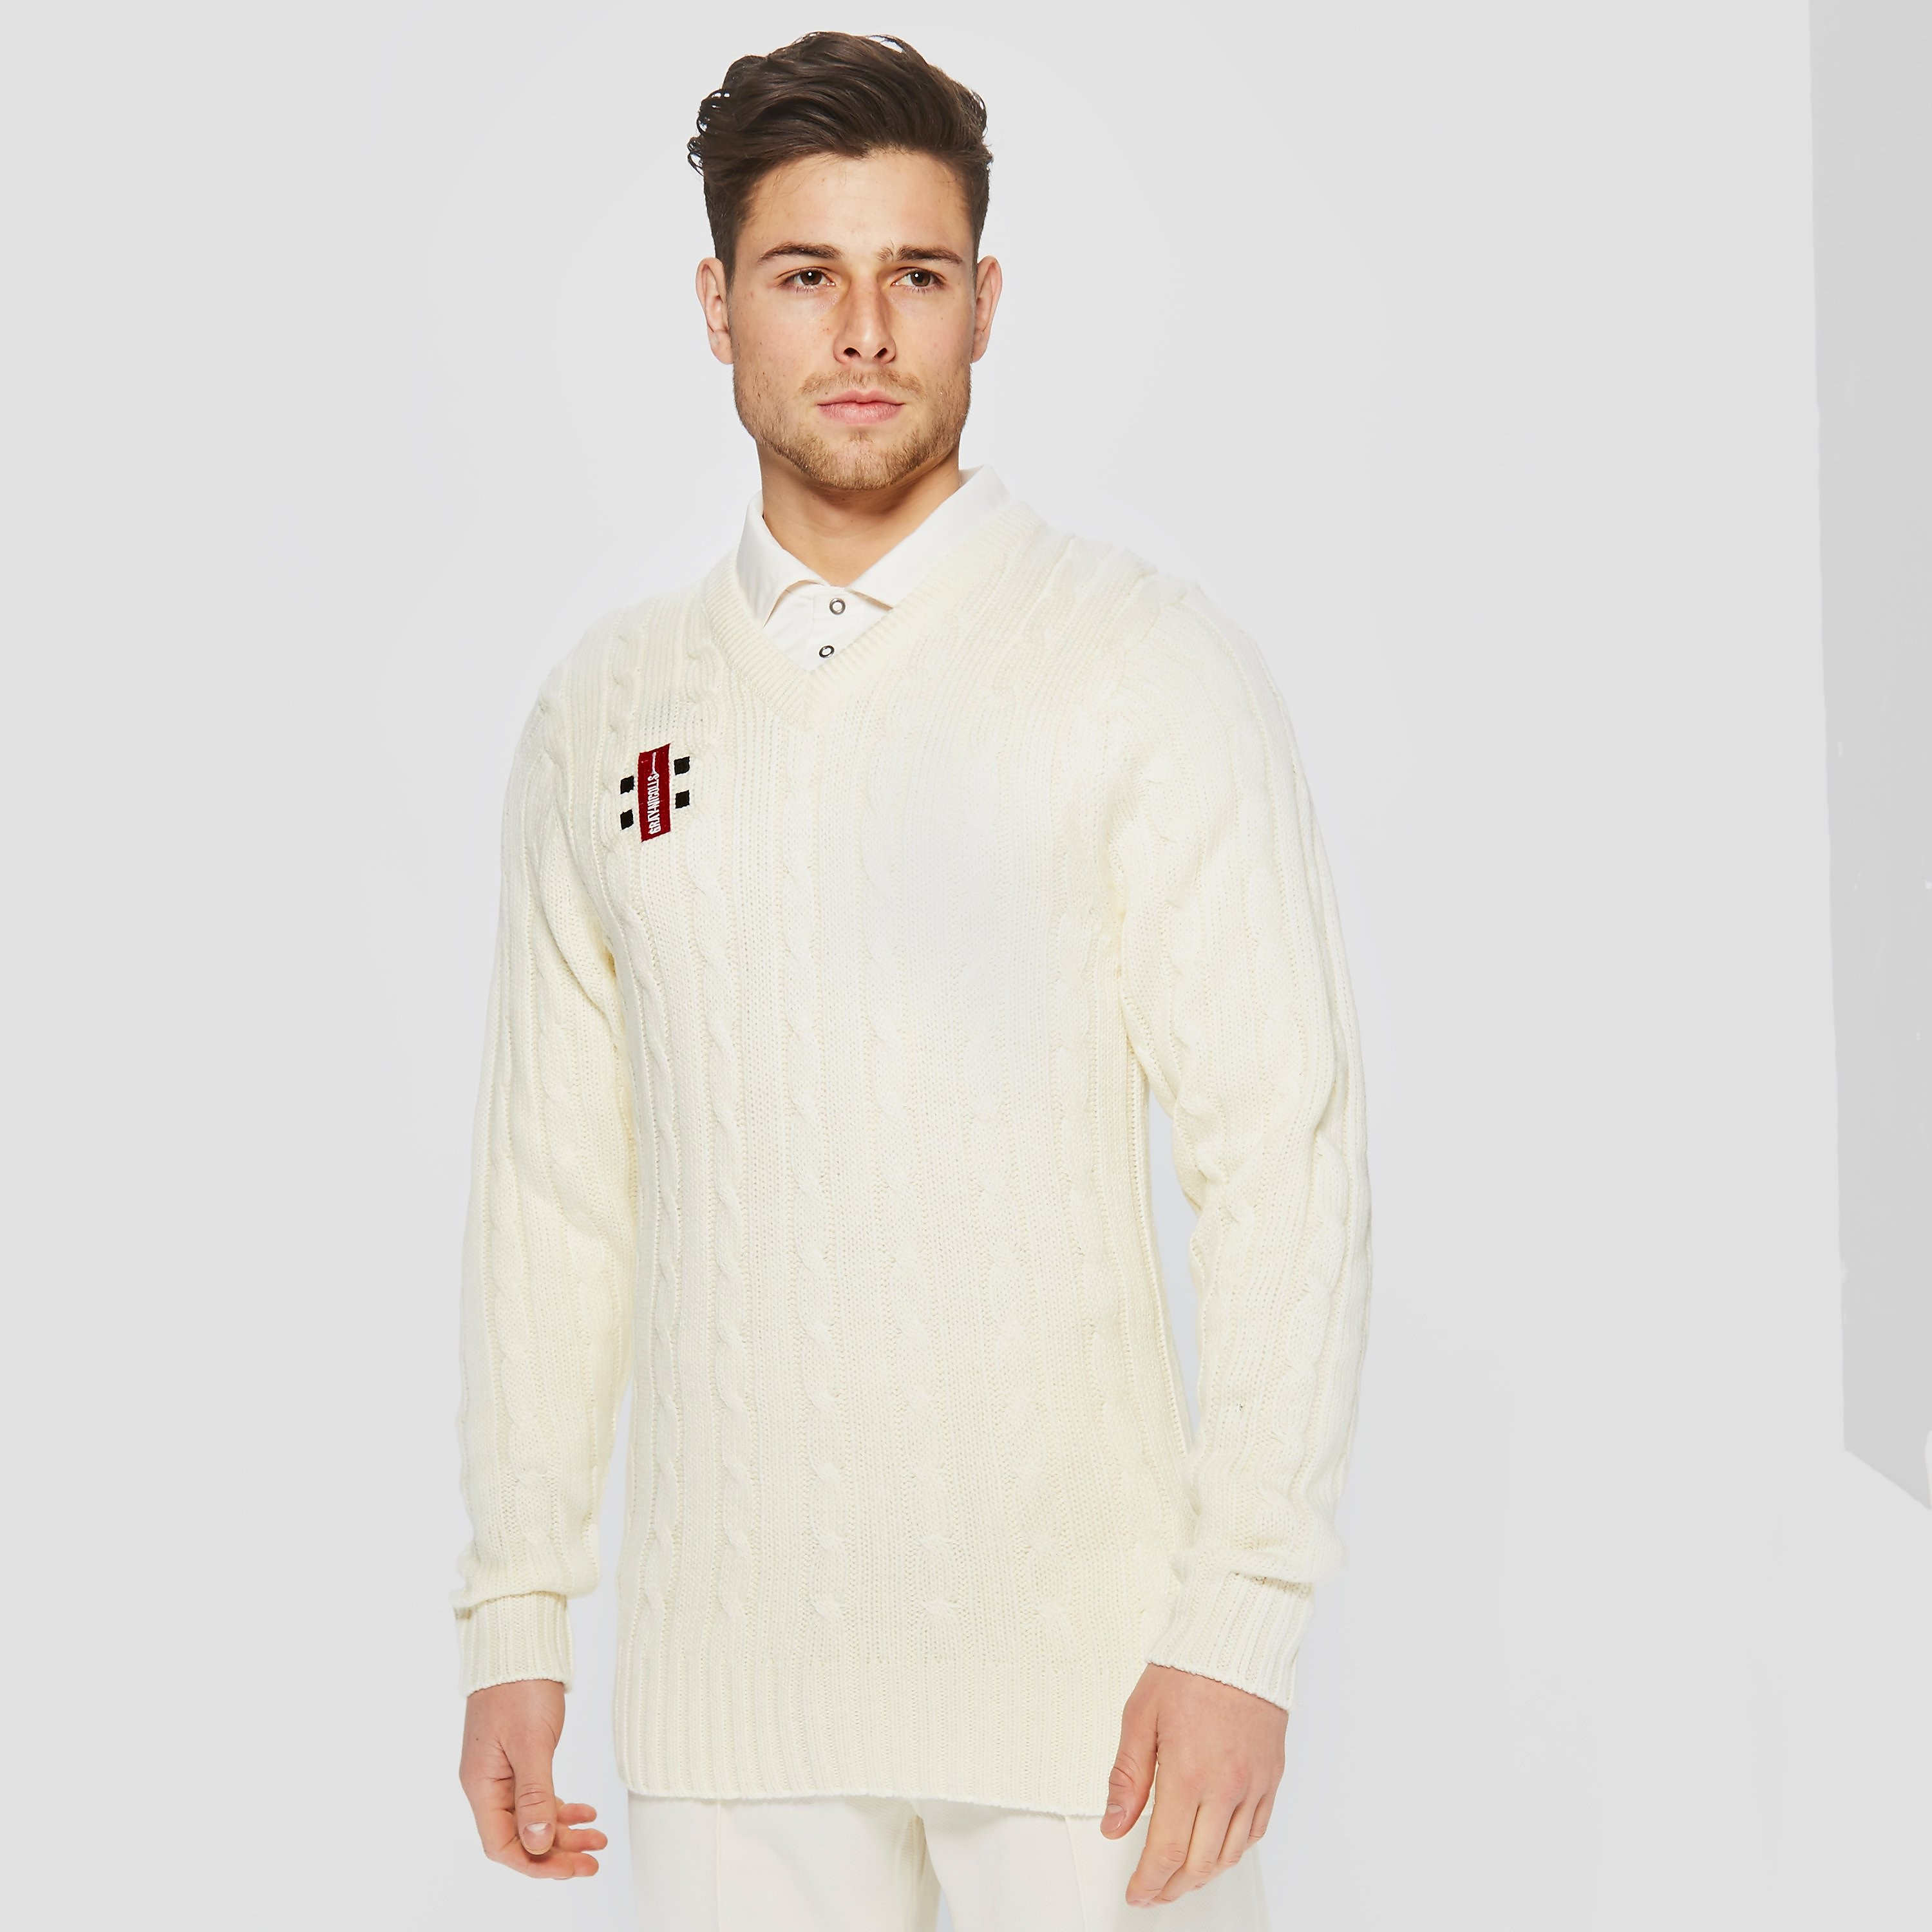 Gray Nicolls Acrylic Men's Sweater